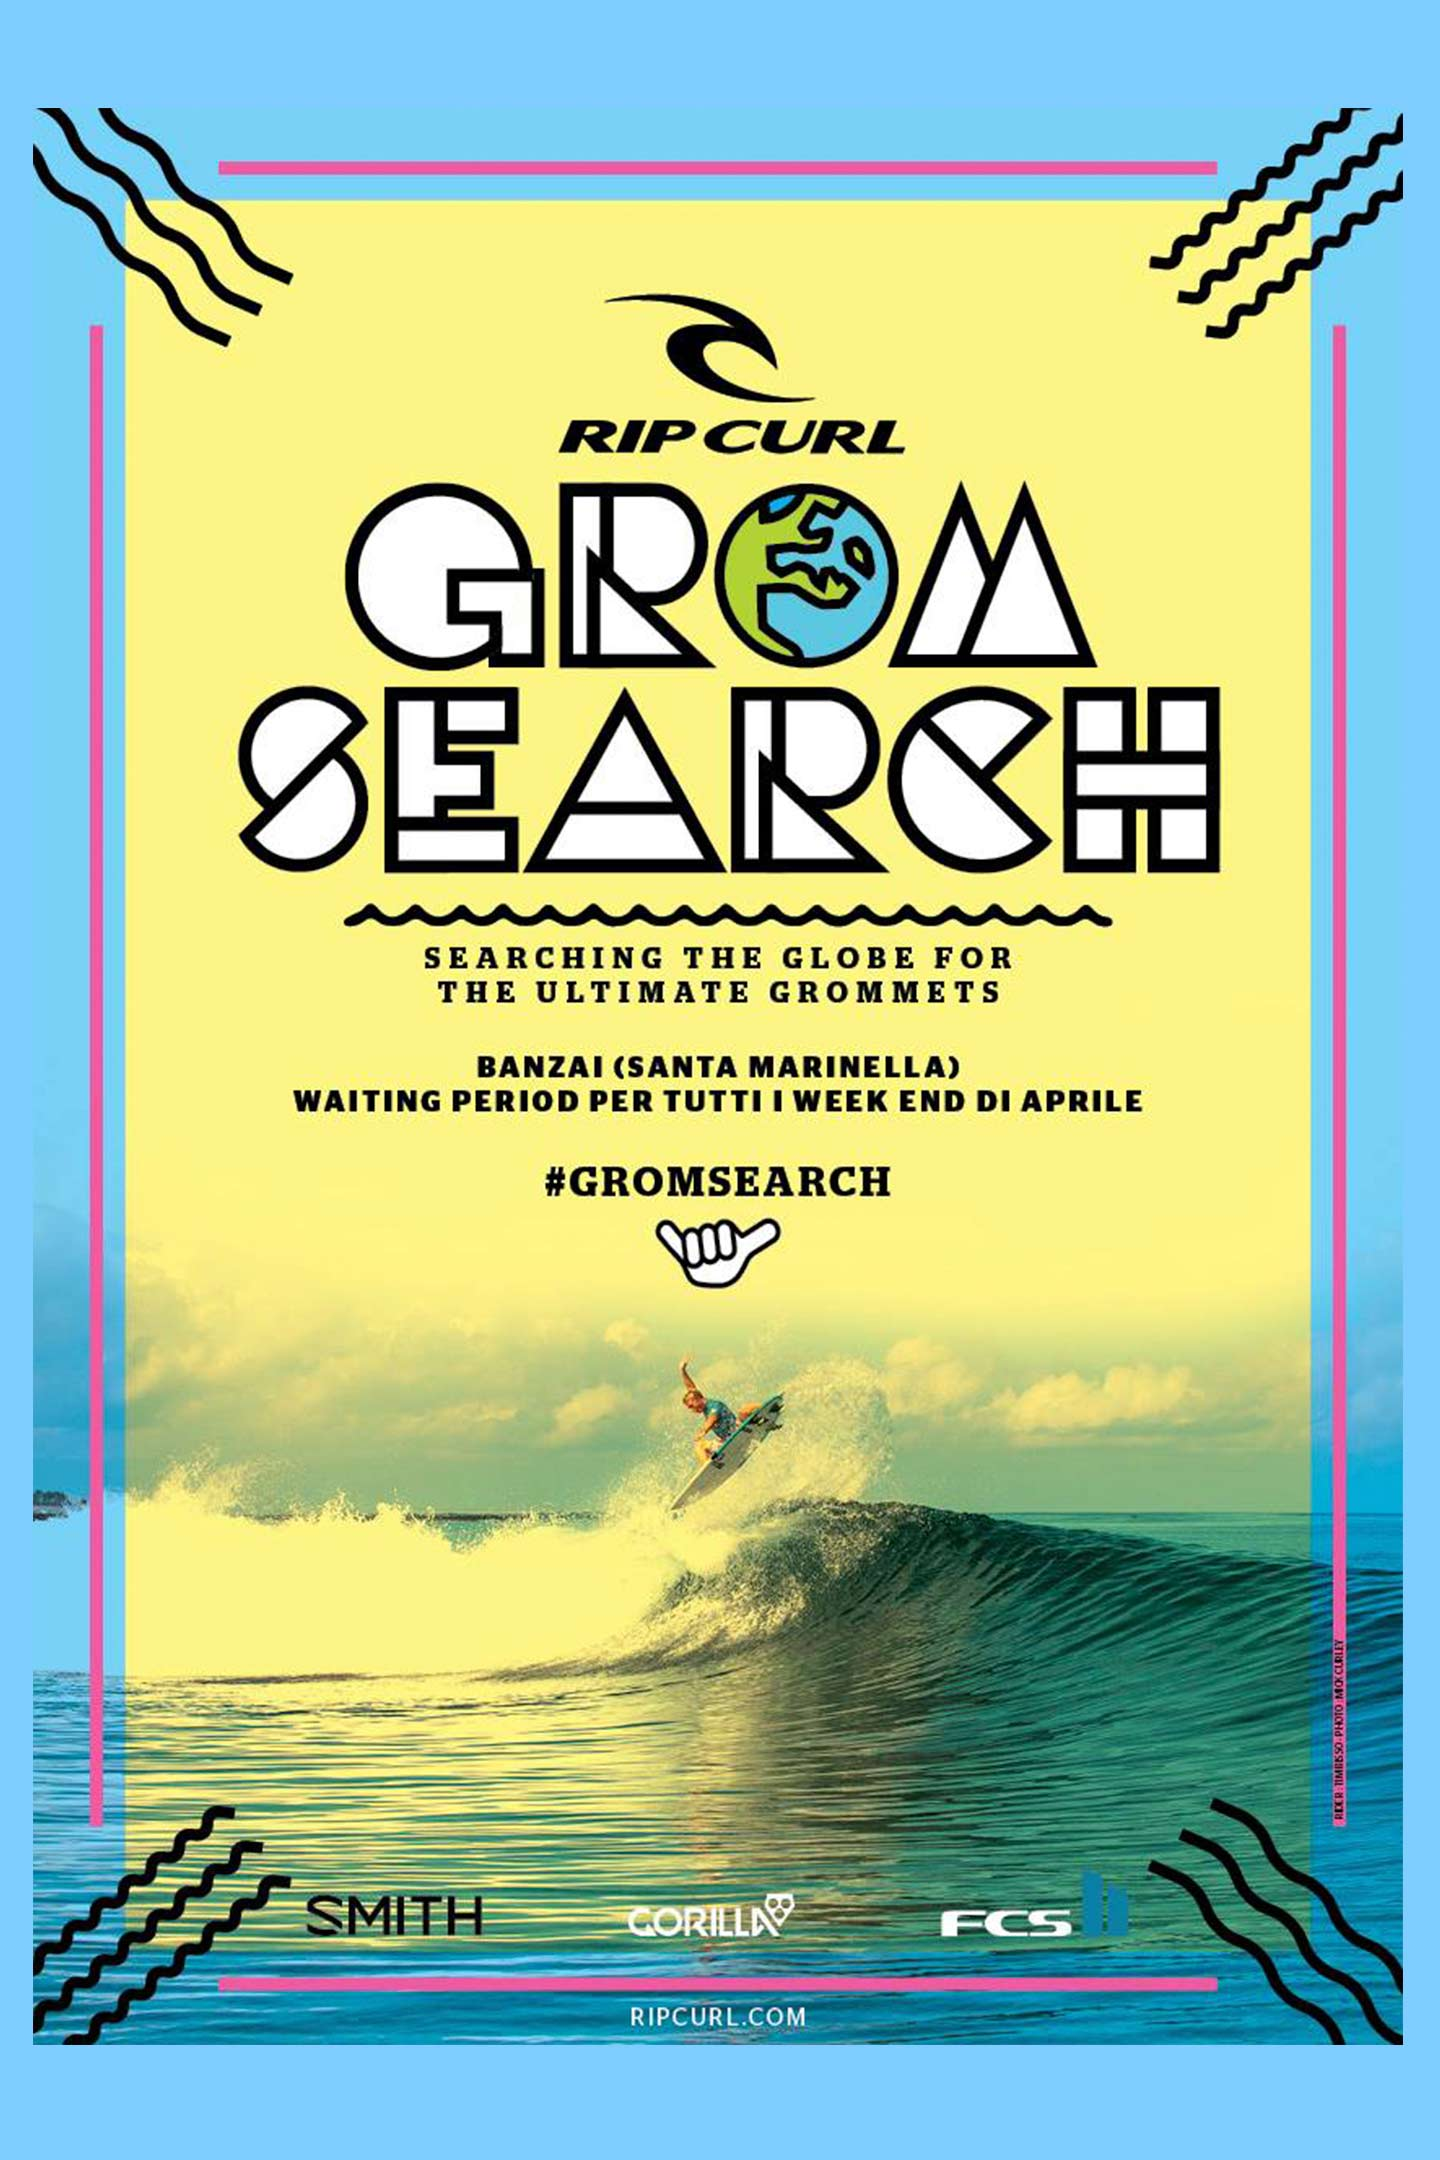 rip_curl_grom_search_italia_surfculture_flyer